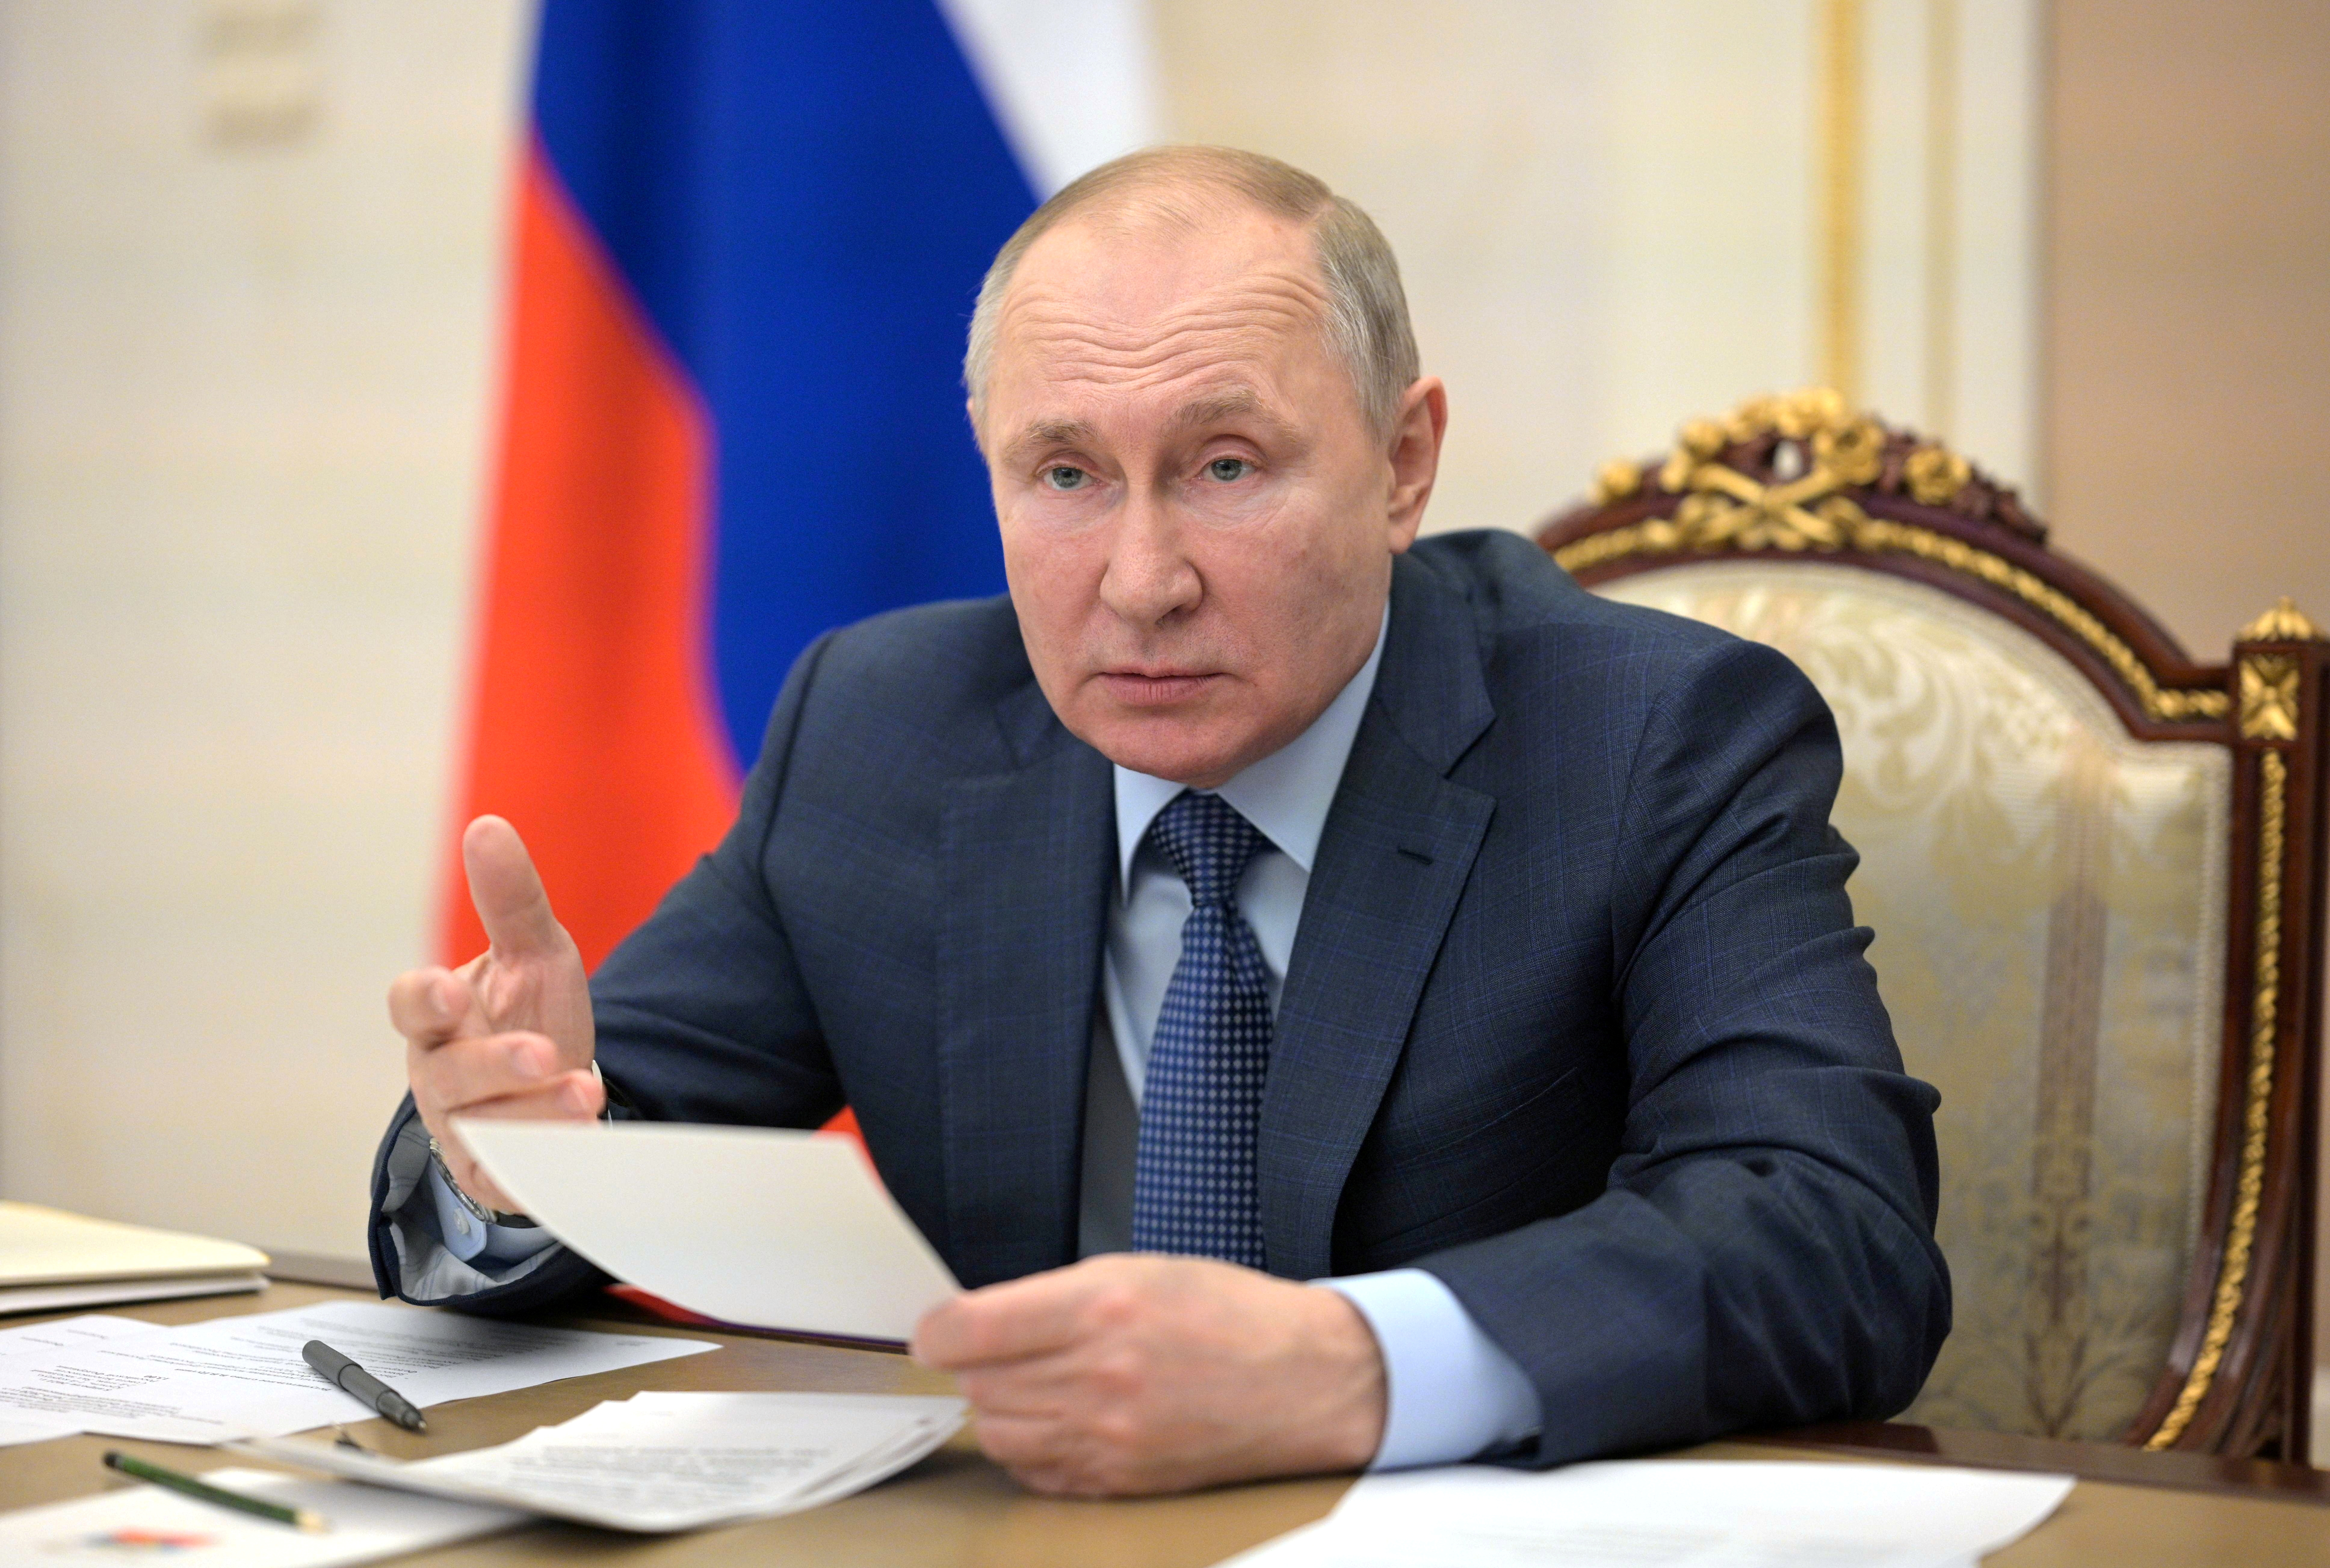 Russian President Vladimir Putin chairs a meeting with senior members of the government, via a video conference call at the Kremlin in Moscow, Russia April 8, 2021. Sputnik/Alexei Druzhinin/Kremlin via REUTERS